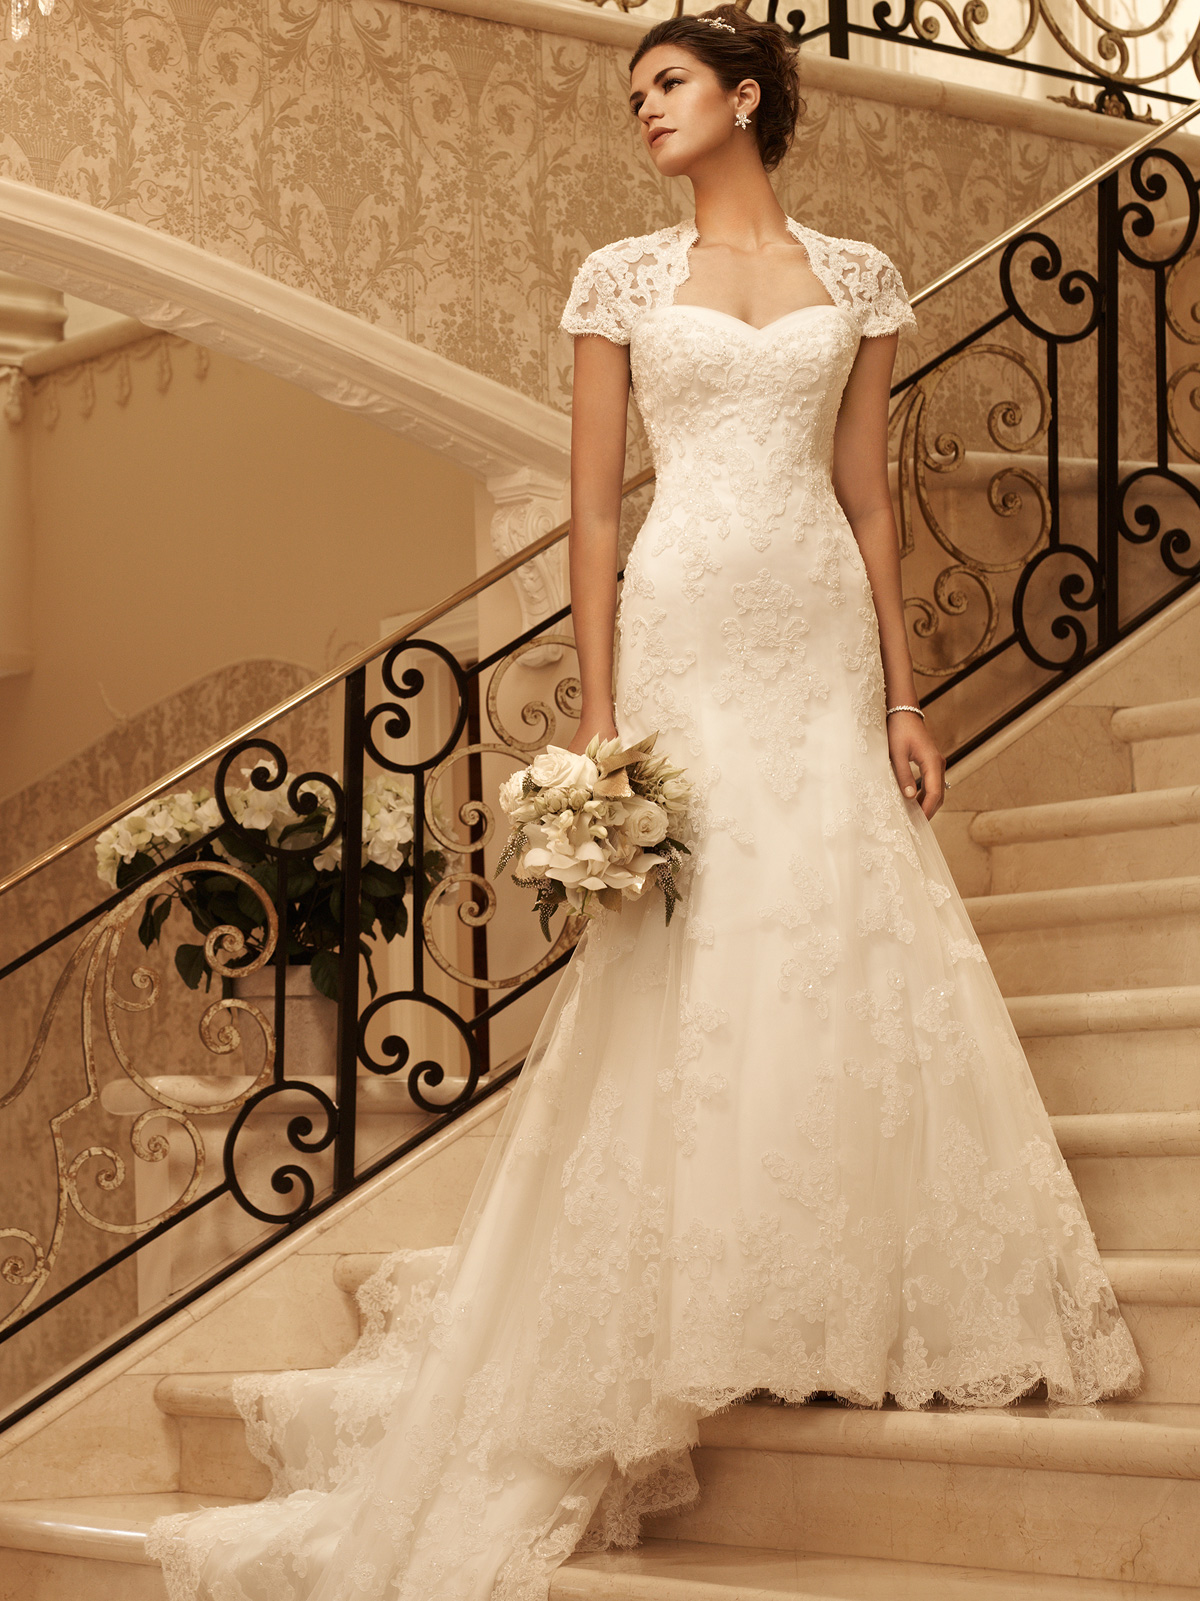 Short Sleeve Fit And Flare Casablanca Bridal Gown 2102DimitraDesigns ...